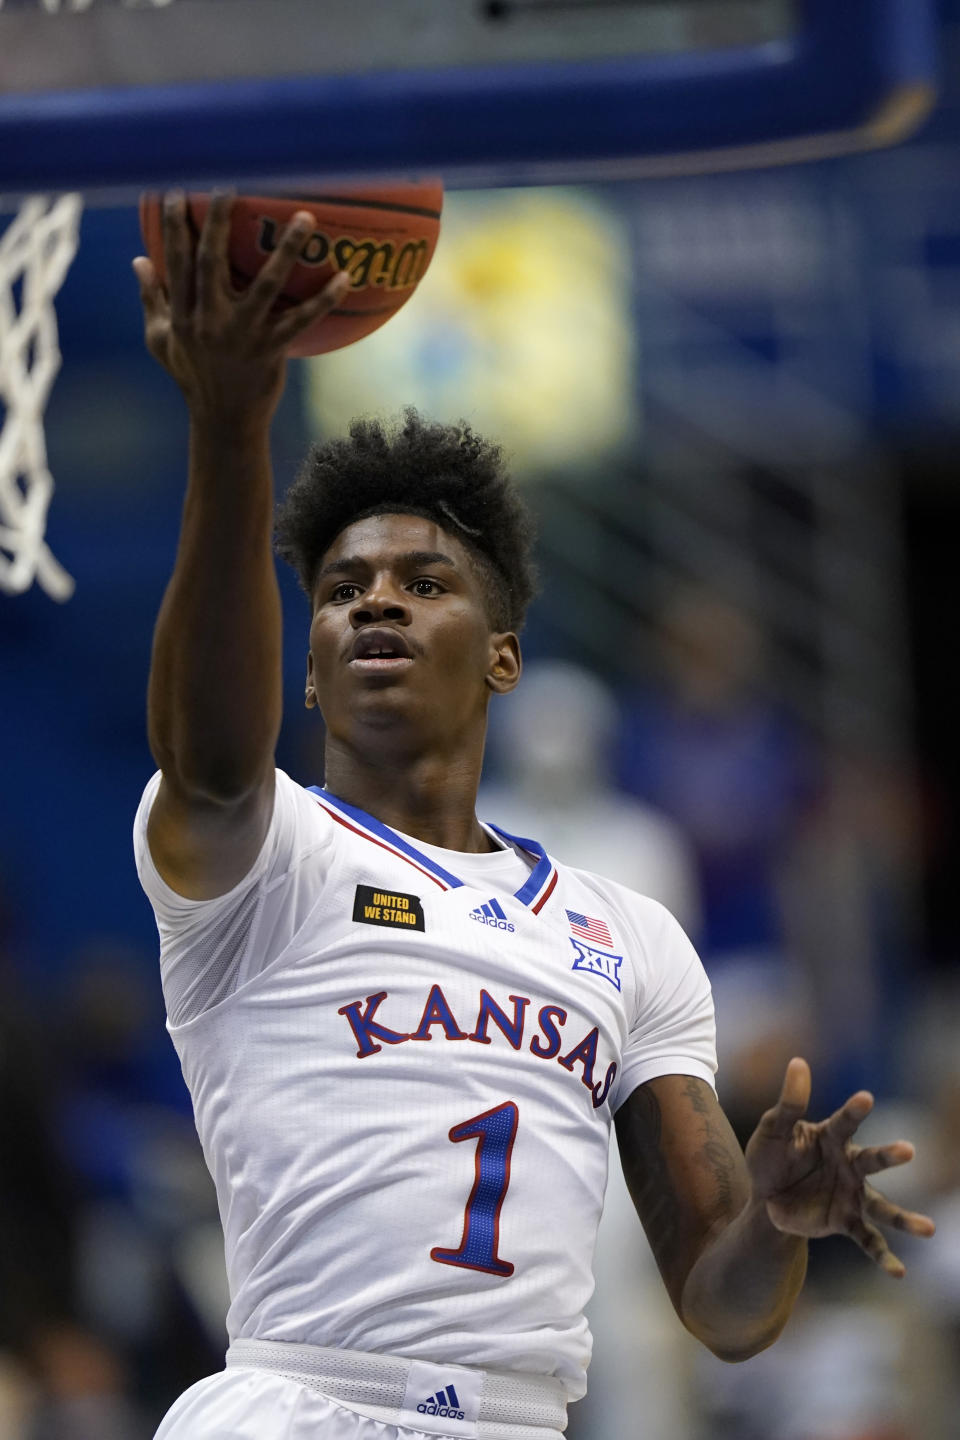 Kansas guard Tyon Grant-Foster drives for a basket during the first half of the team's NCAA college basketball game against Washburn in Lawrence, Kan., Thursday, Dec. 3, 2020. (AP Photo/Orlin Wagner)